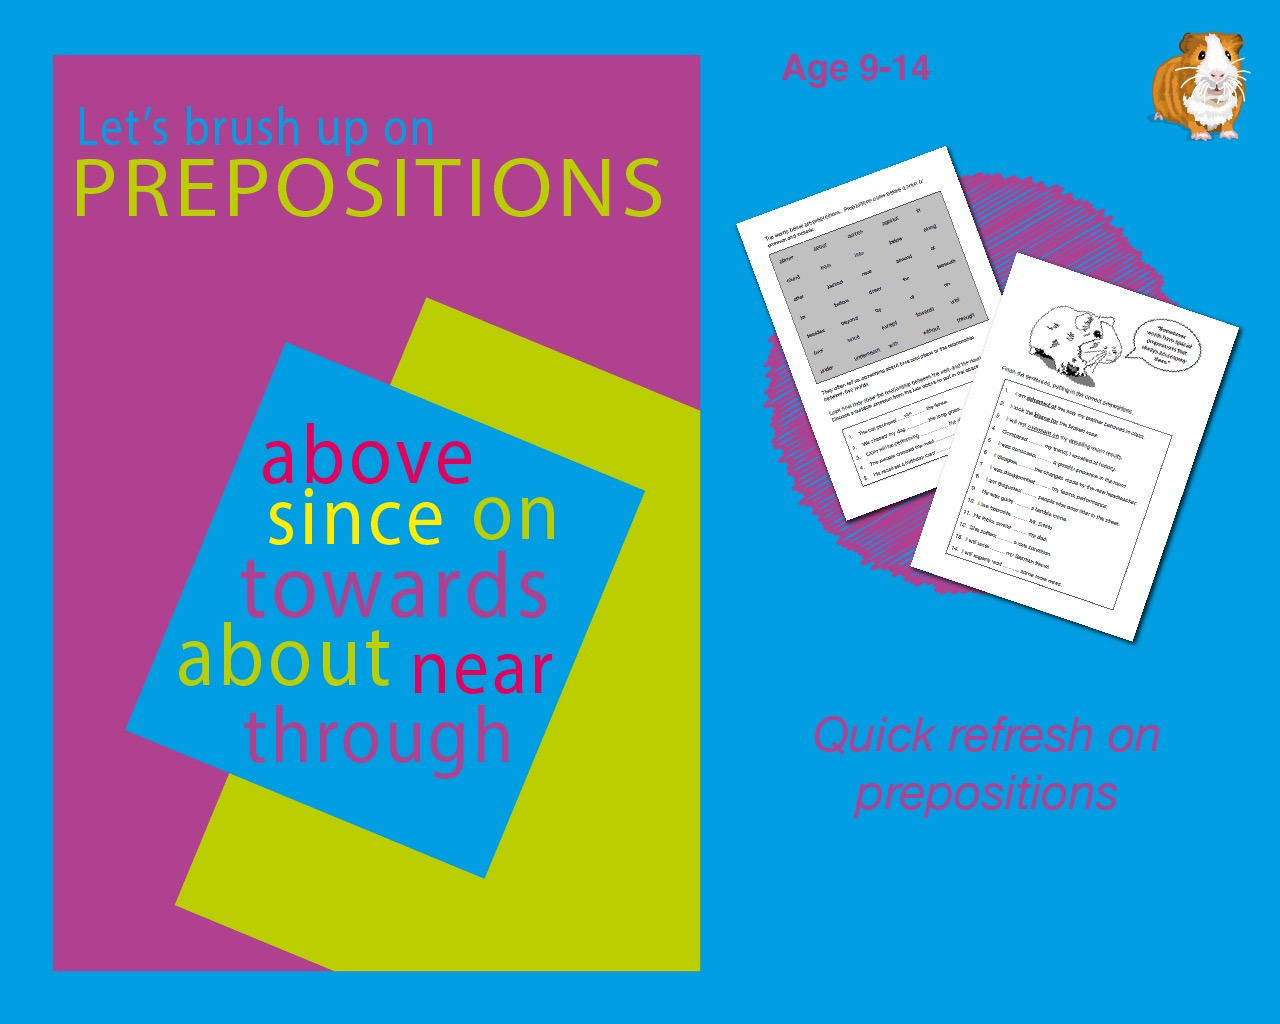 Brush Up On Using Prepositions (9-14 years)